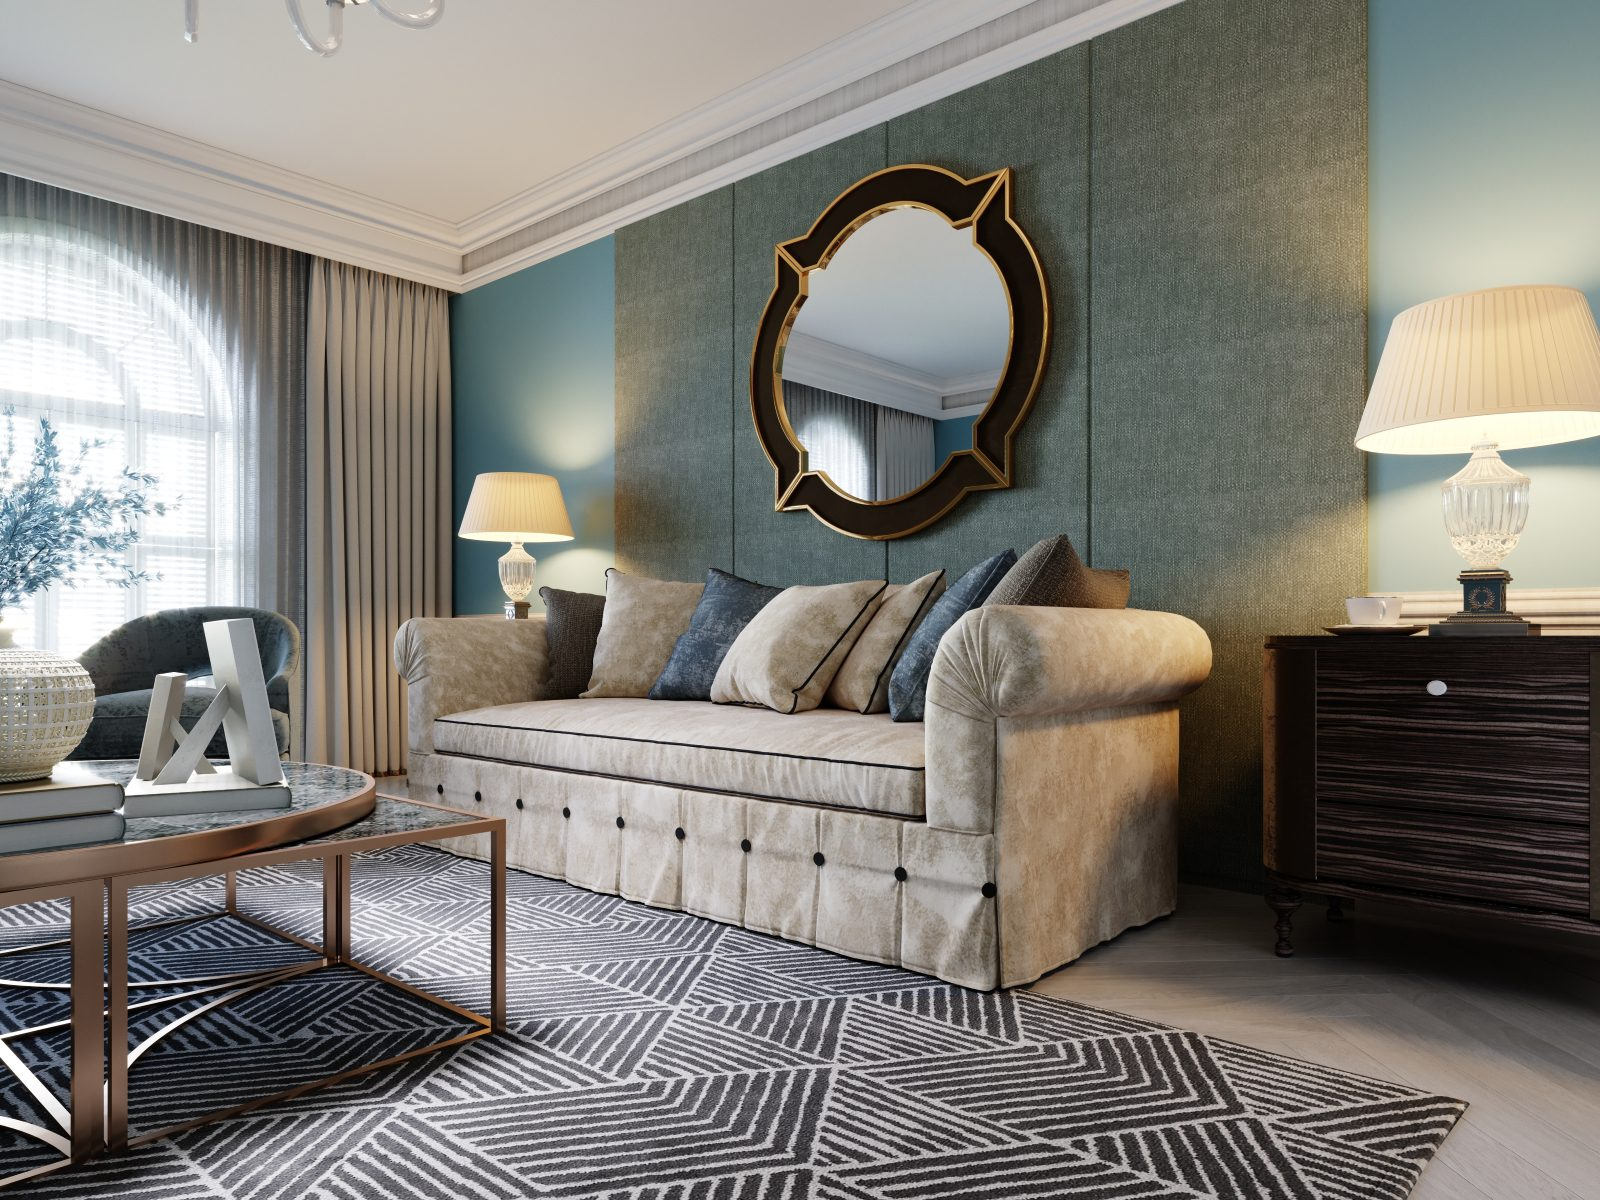 Styling decorative wall mirrors: Tips to pick the perfect piece